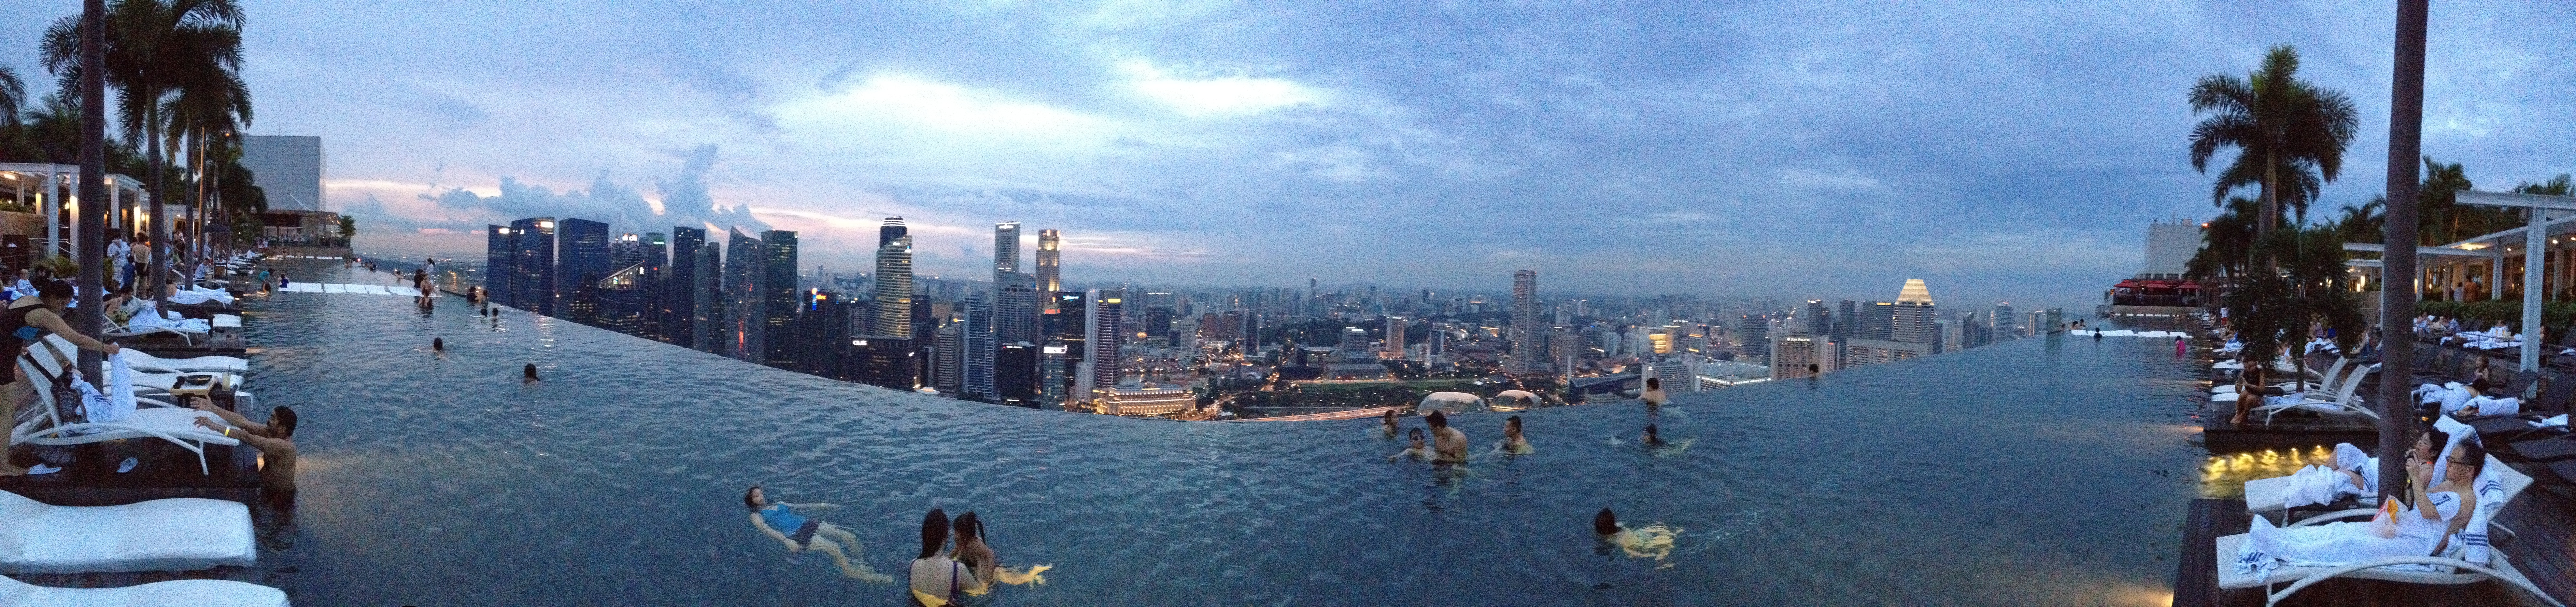 File 2012 12 30 Marina Bay Sands Infinity Pool Jpg Wikimedia Commons